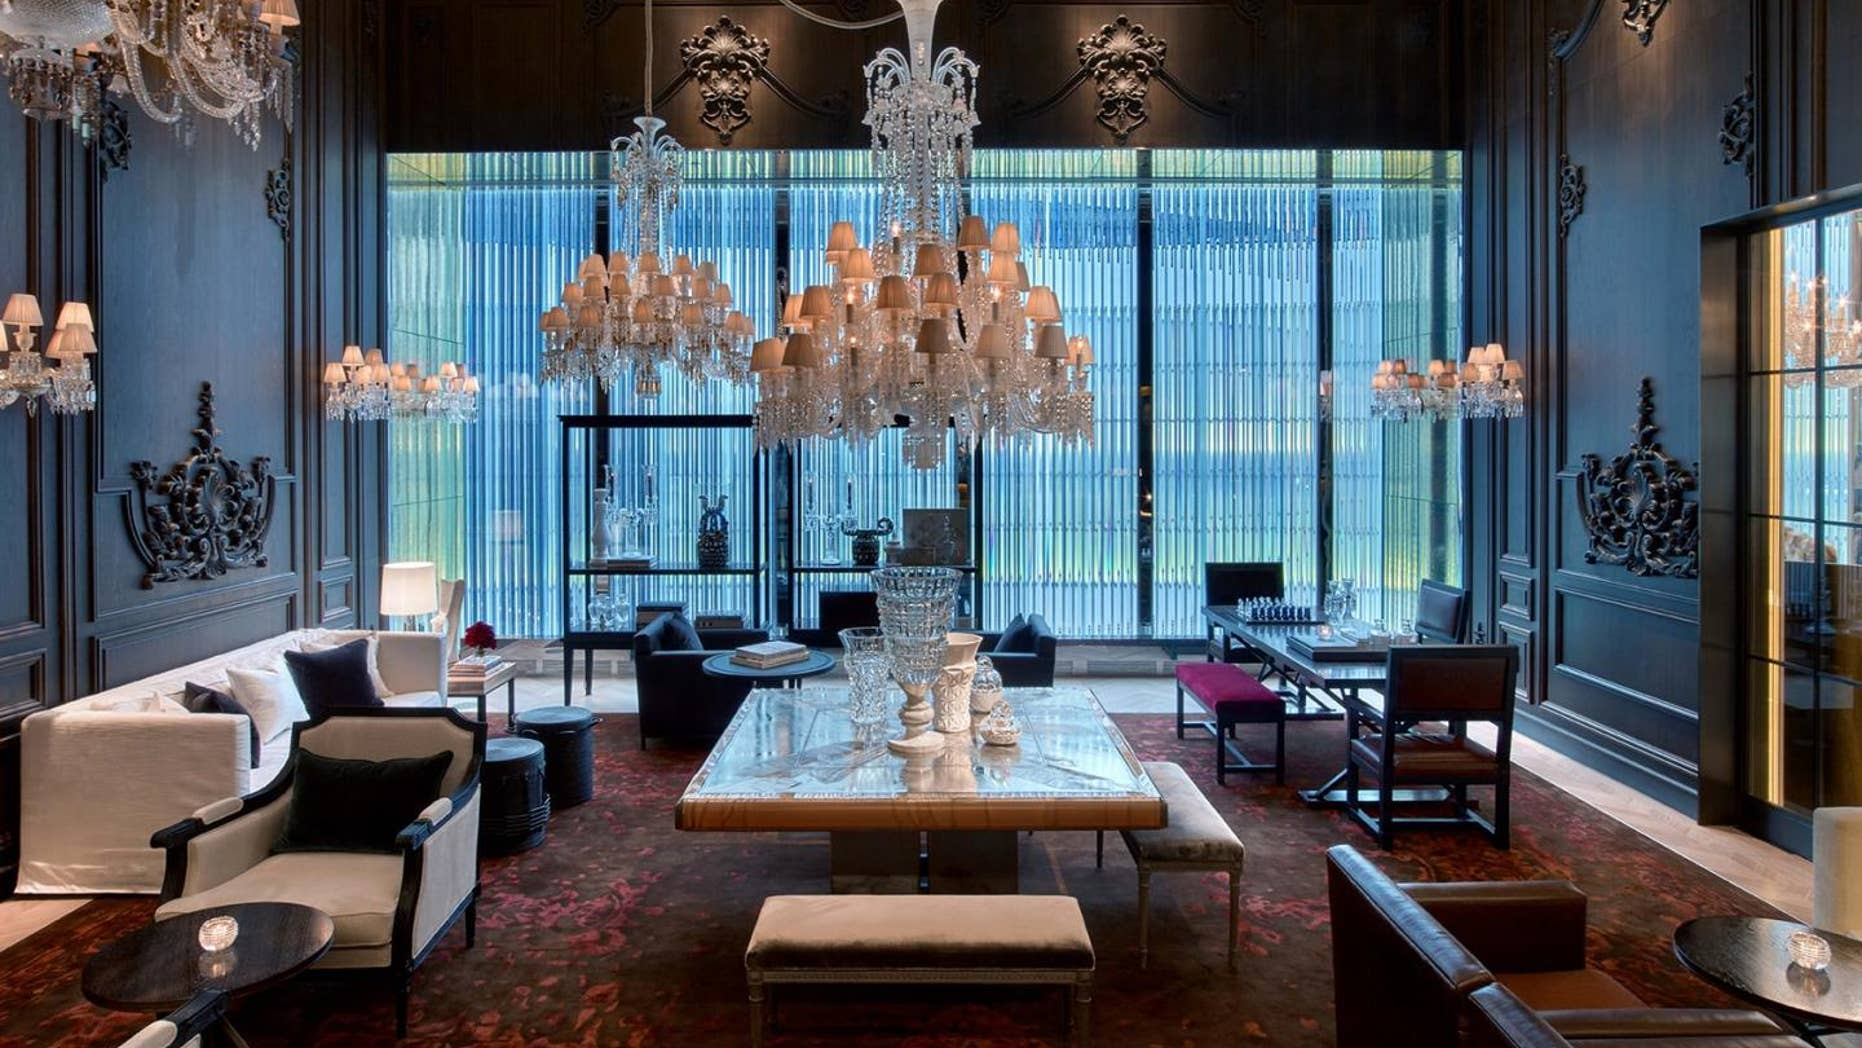 The Petit Salon is dripping in crystals at this midtown Manhattan hotel.